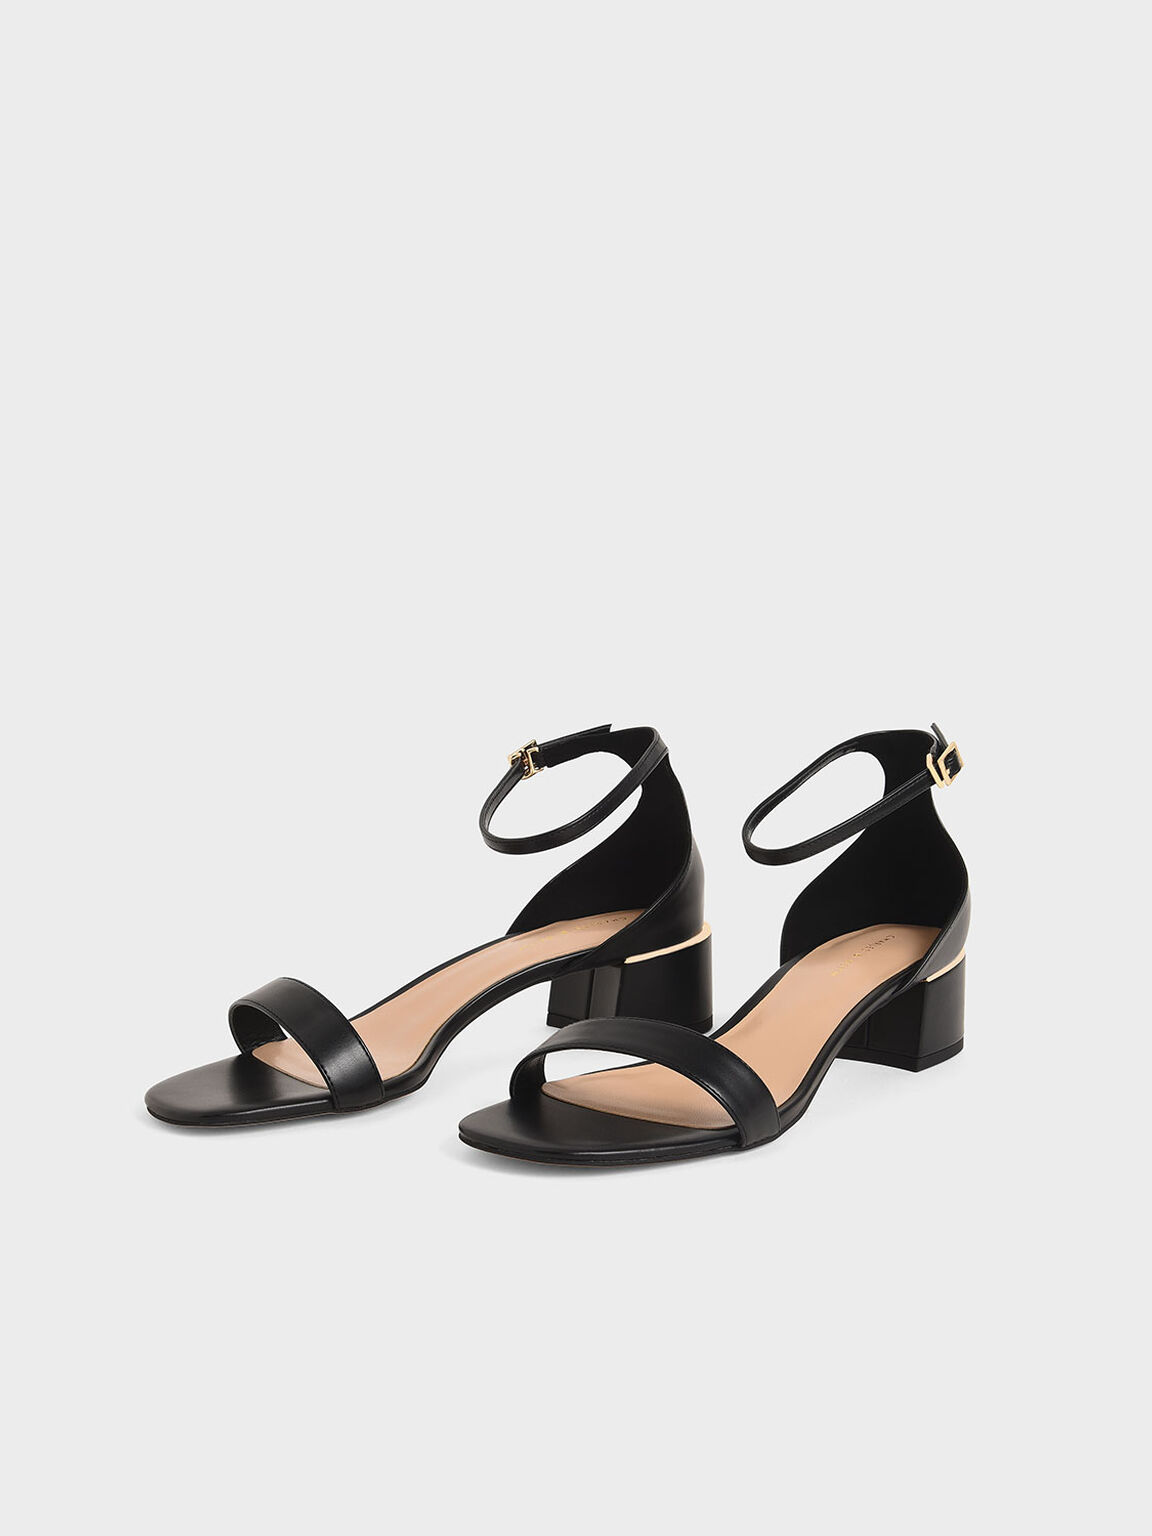 Ankle Strap Heeled Sandals, Black, hi-res